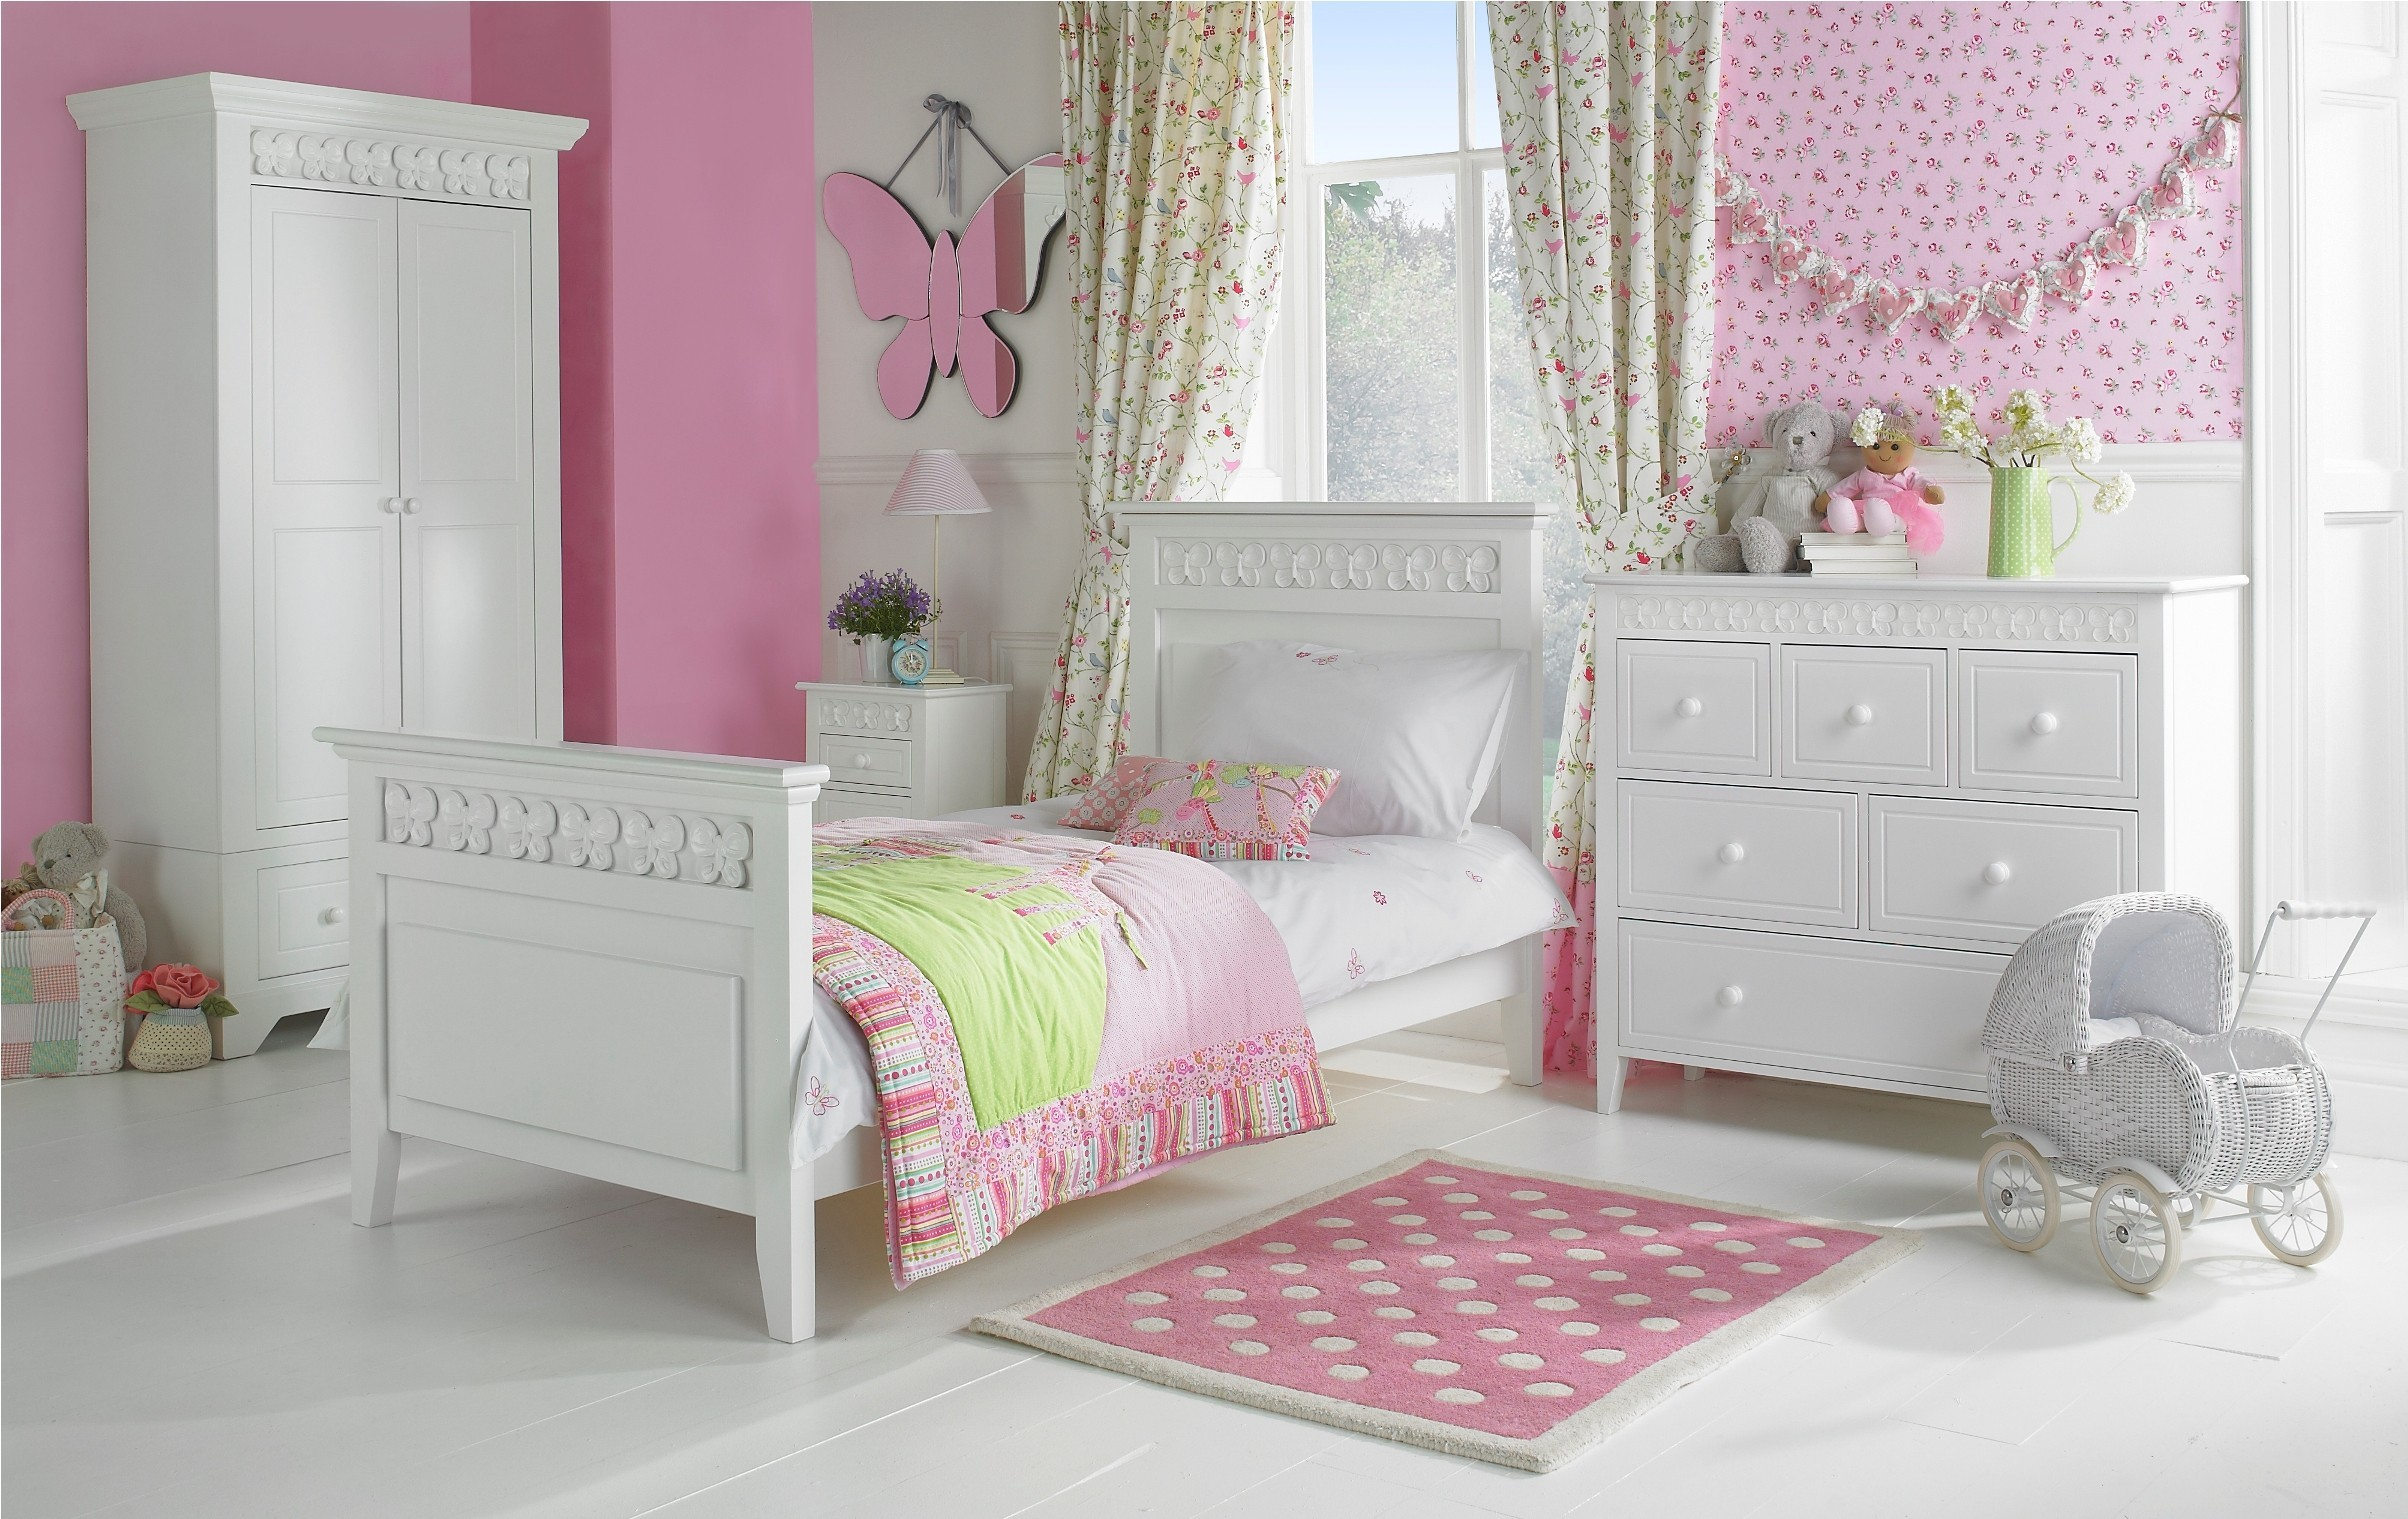 childrens bedroom furniture ... beautiful white brown wood glass modern design modern bedroom ... PLLOYVJ